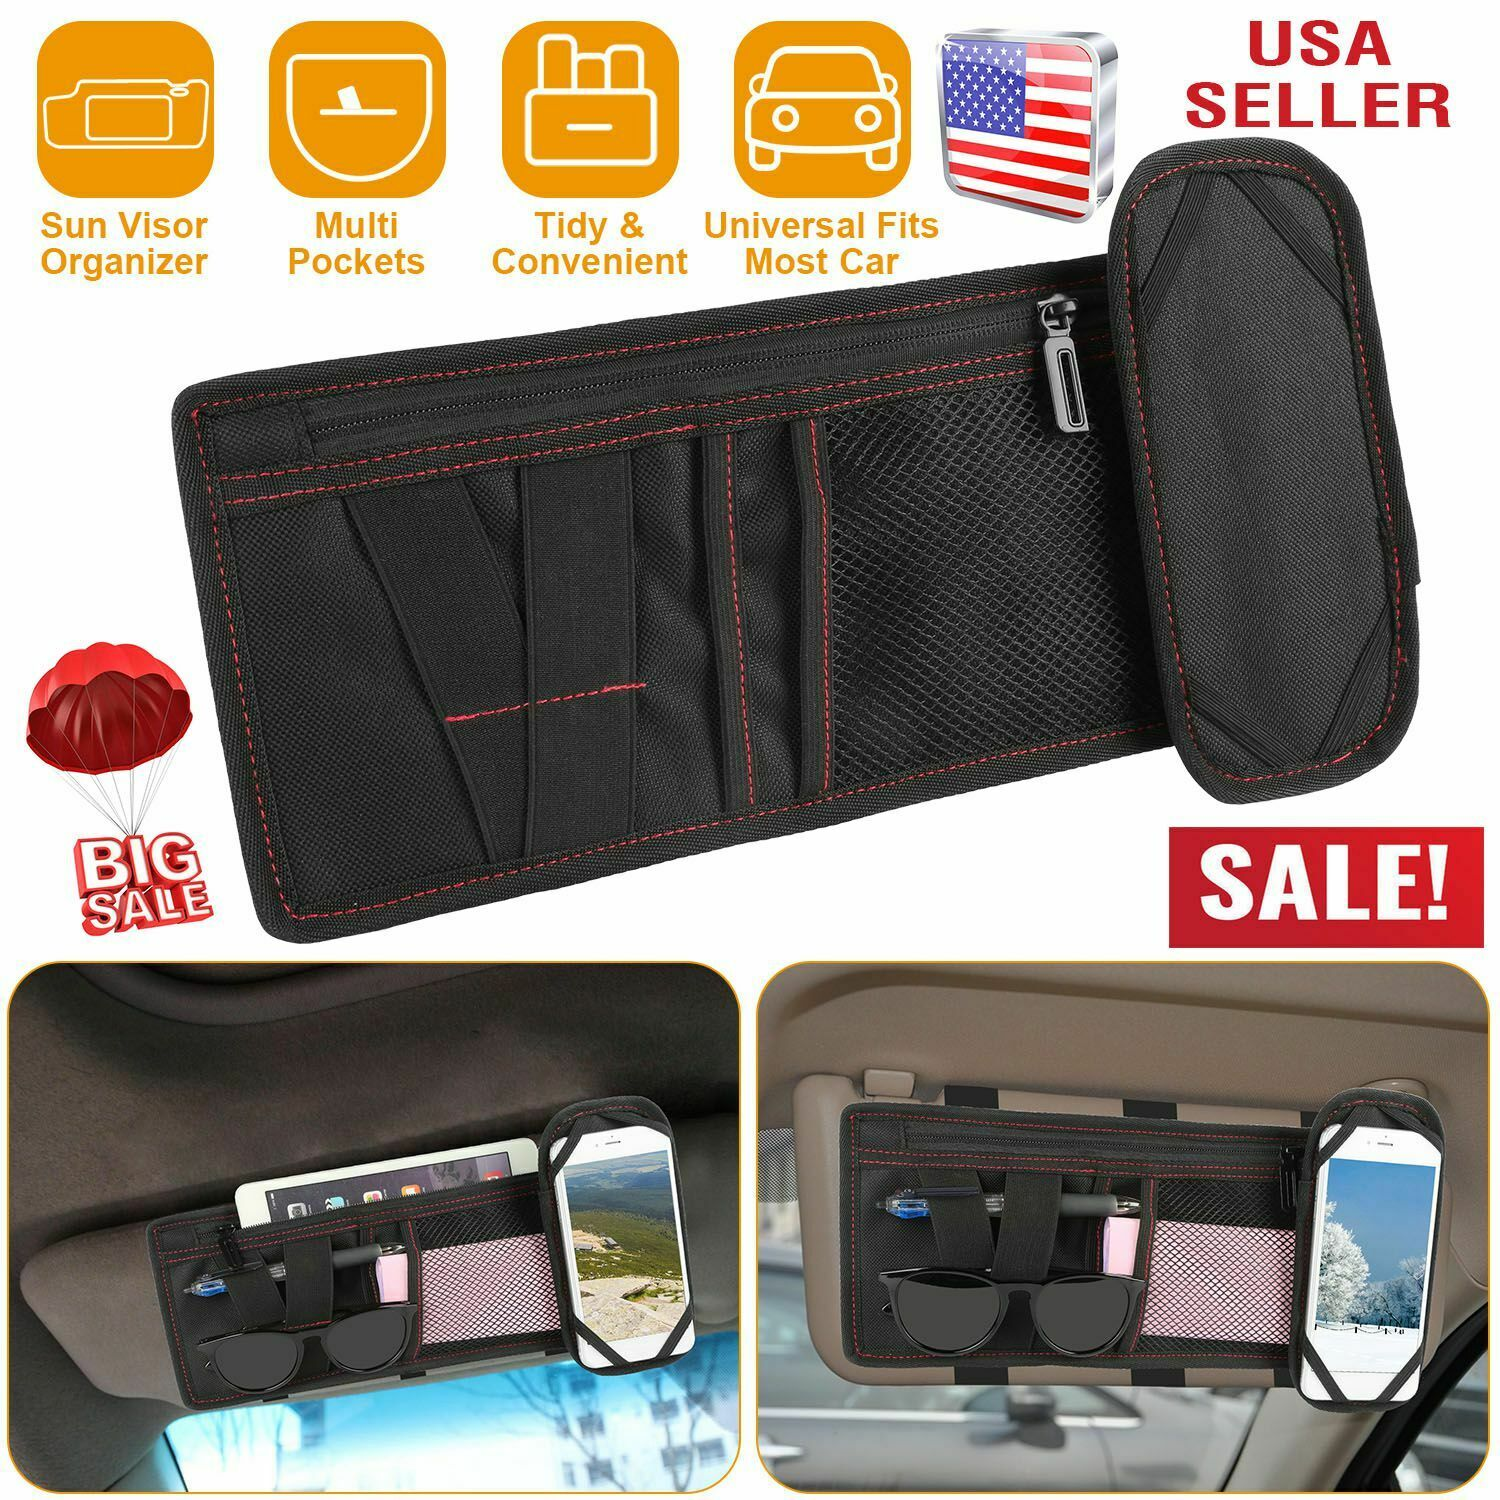 SUV BicycleStore Sun Visor Organizer for Cars Hanger Clips Glasses Holders Pouch Organizer Auto Interior Accessories Personal Belonging Storage for Car Jeep Visors Truck Sunglass Holder for Car